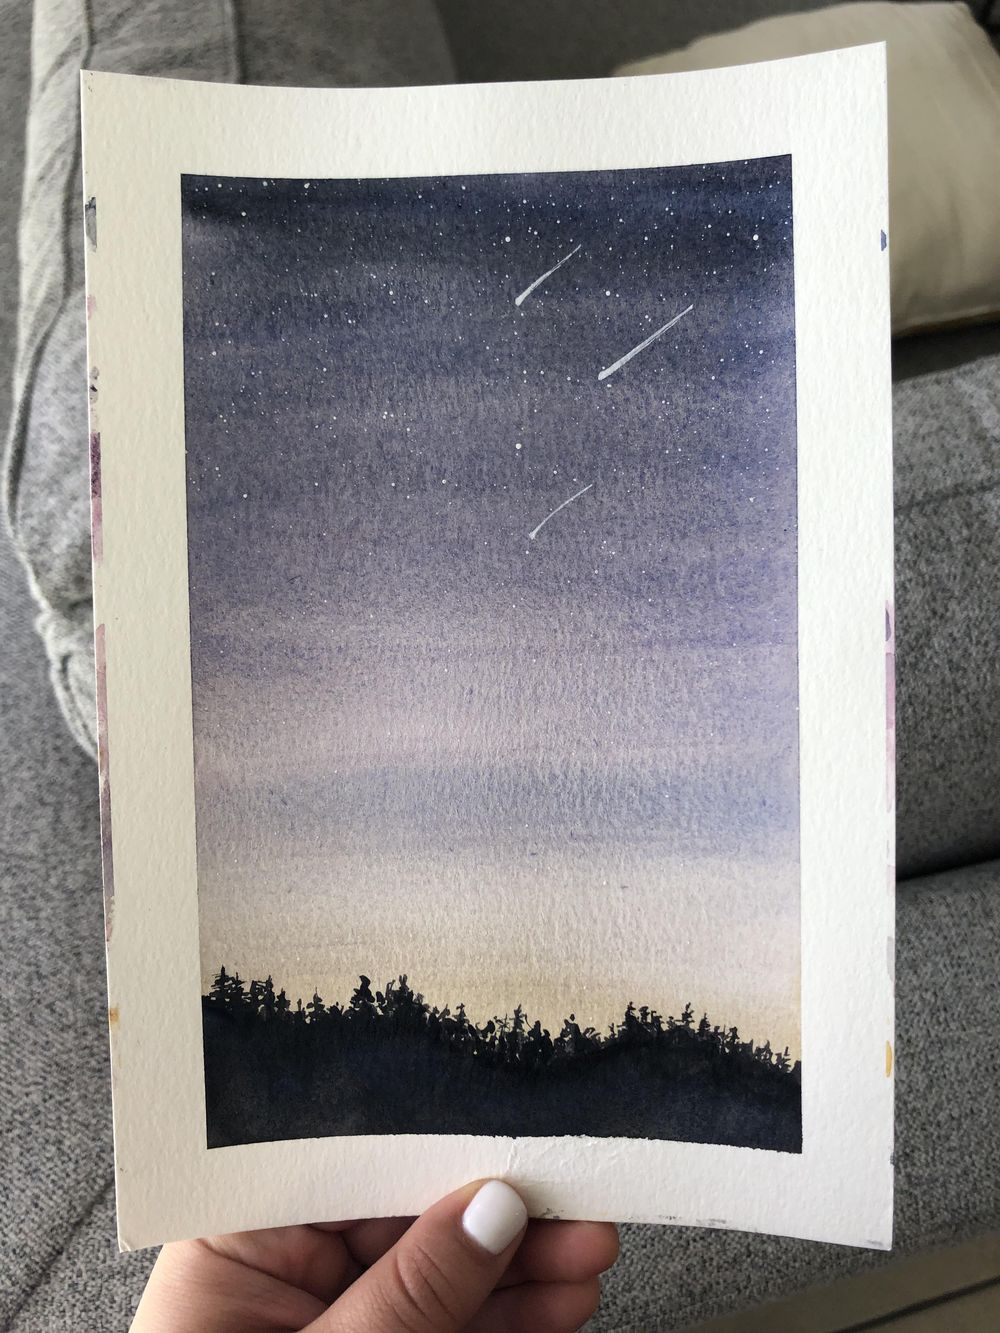 Starry Night Skies - image 1 - student project